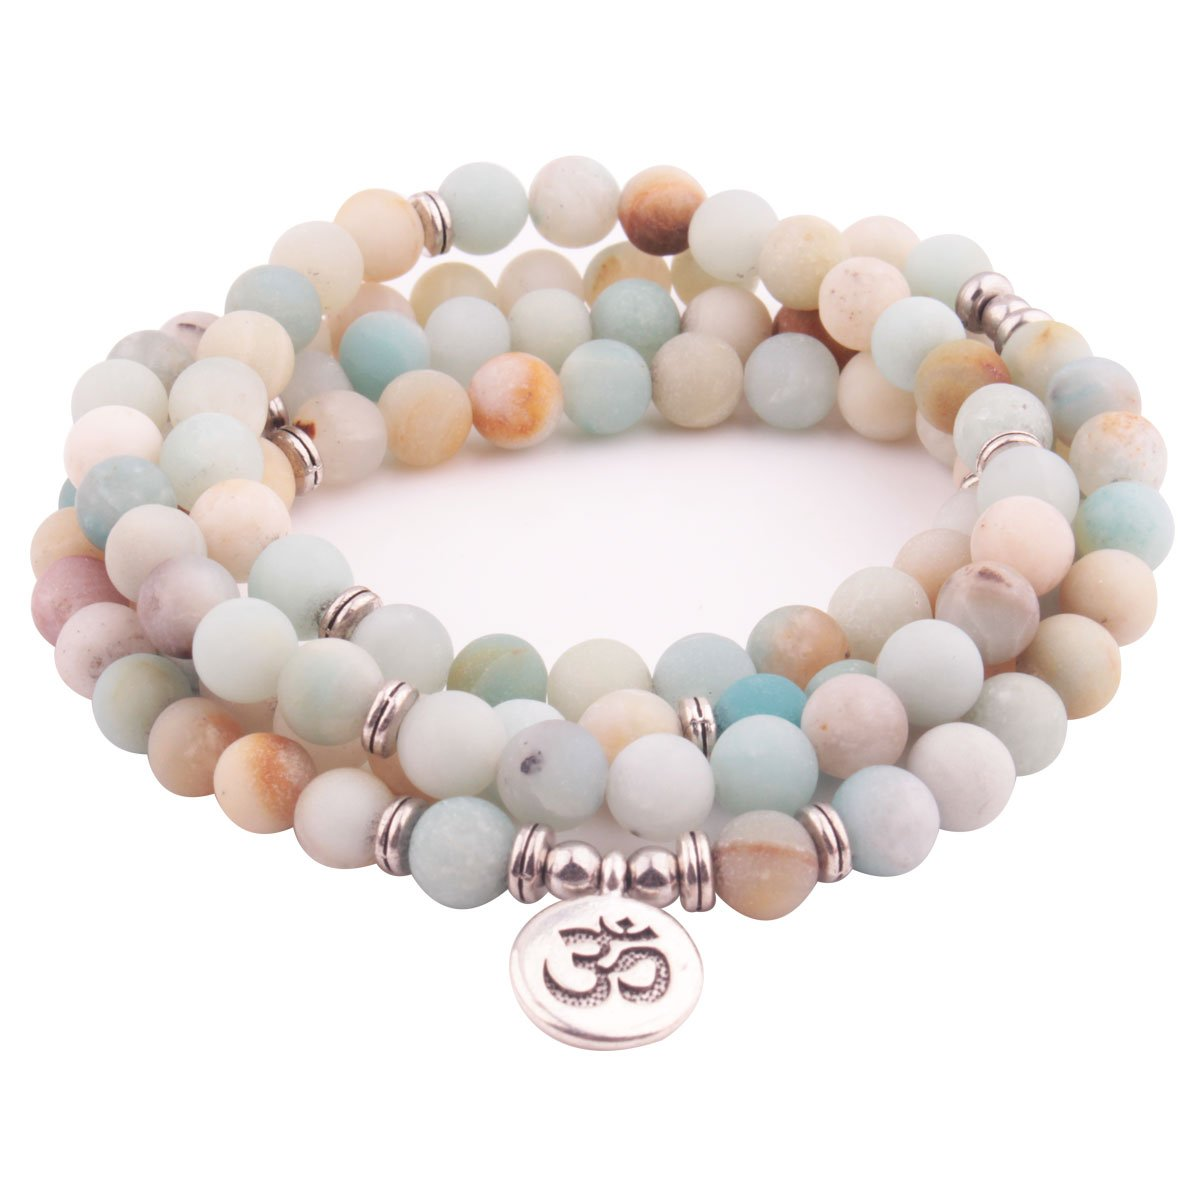 GVUSMIL 108 Matte Amazonite Stone Elasticity Bracelet OM Pendant Necklace for Yoga Buddhist Rosary Prayer